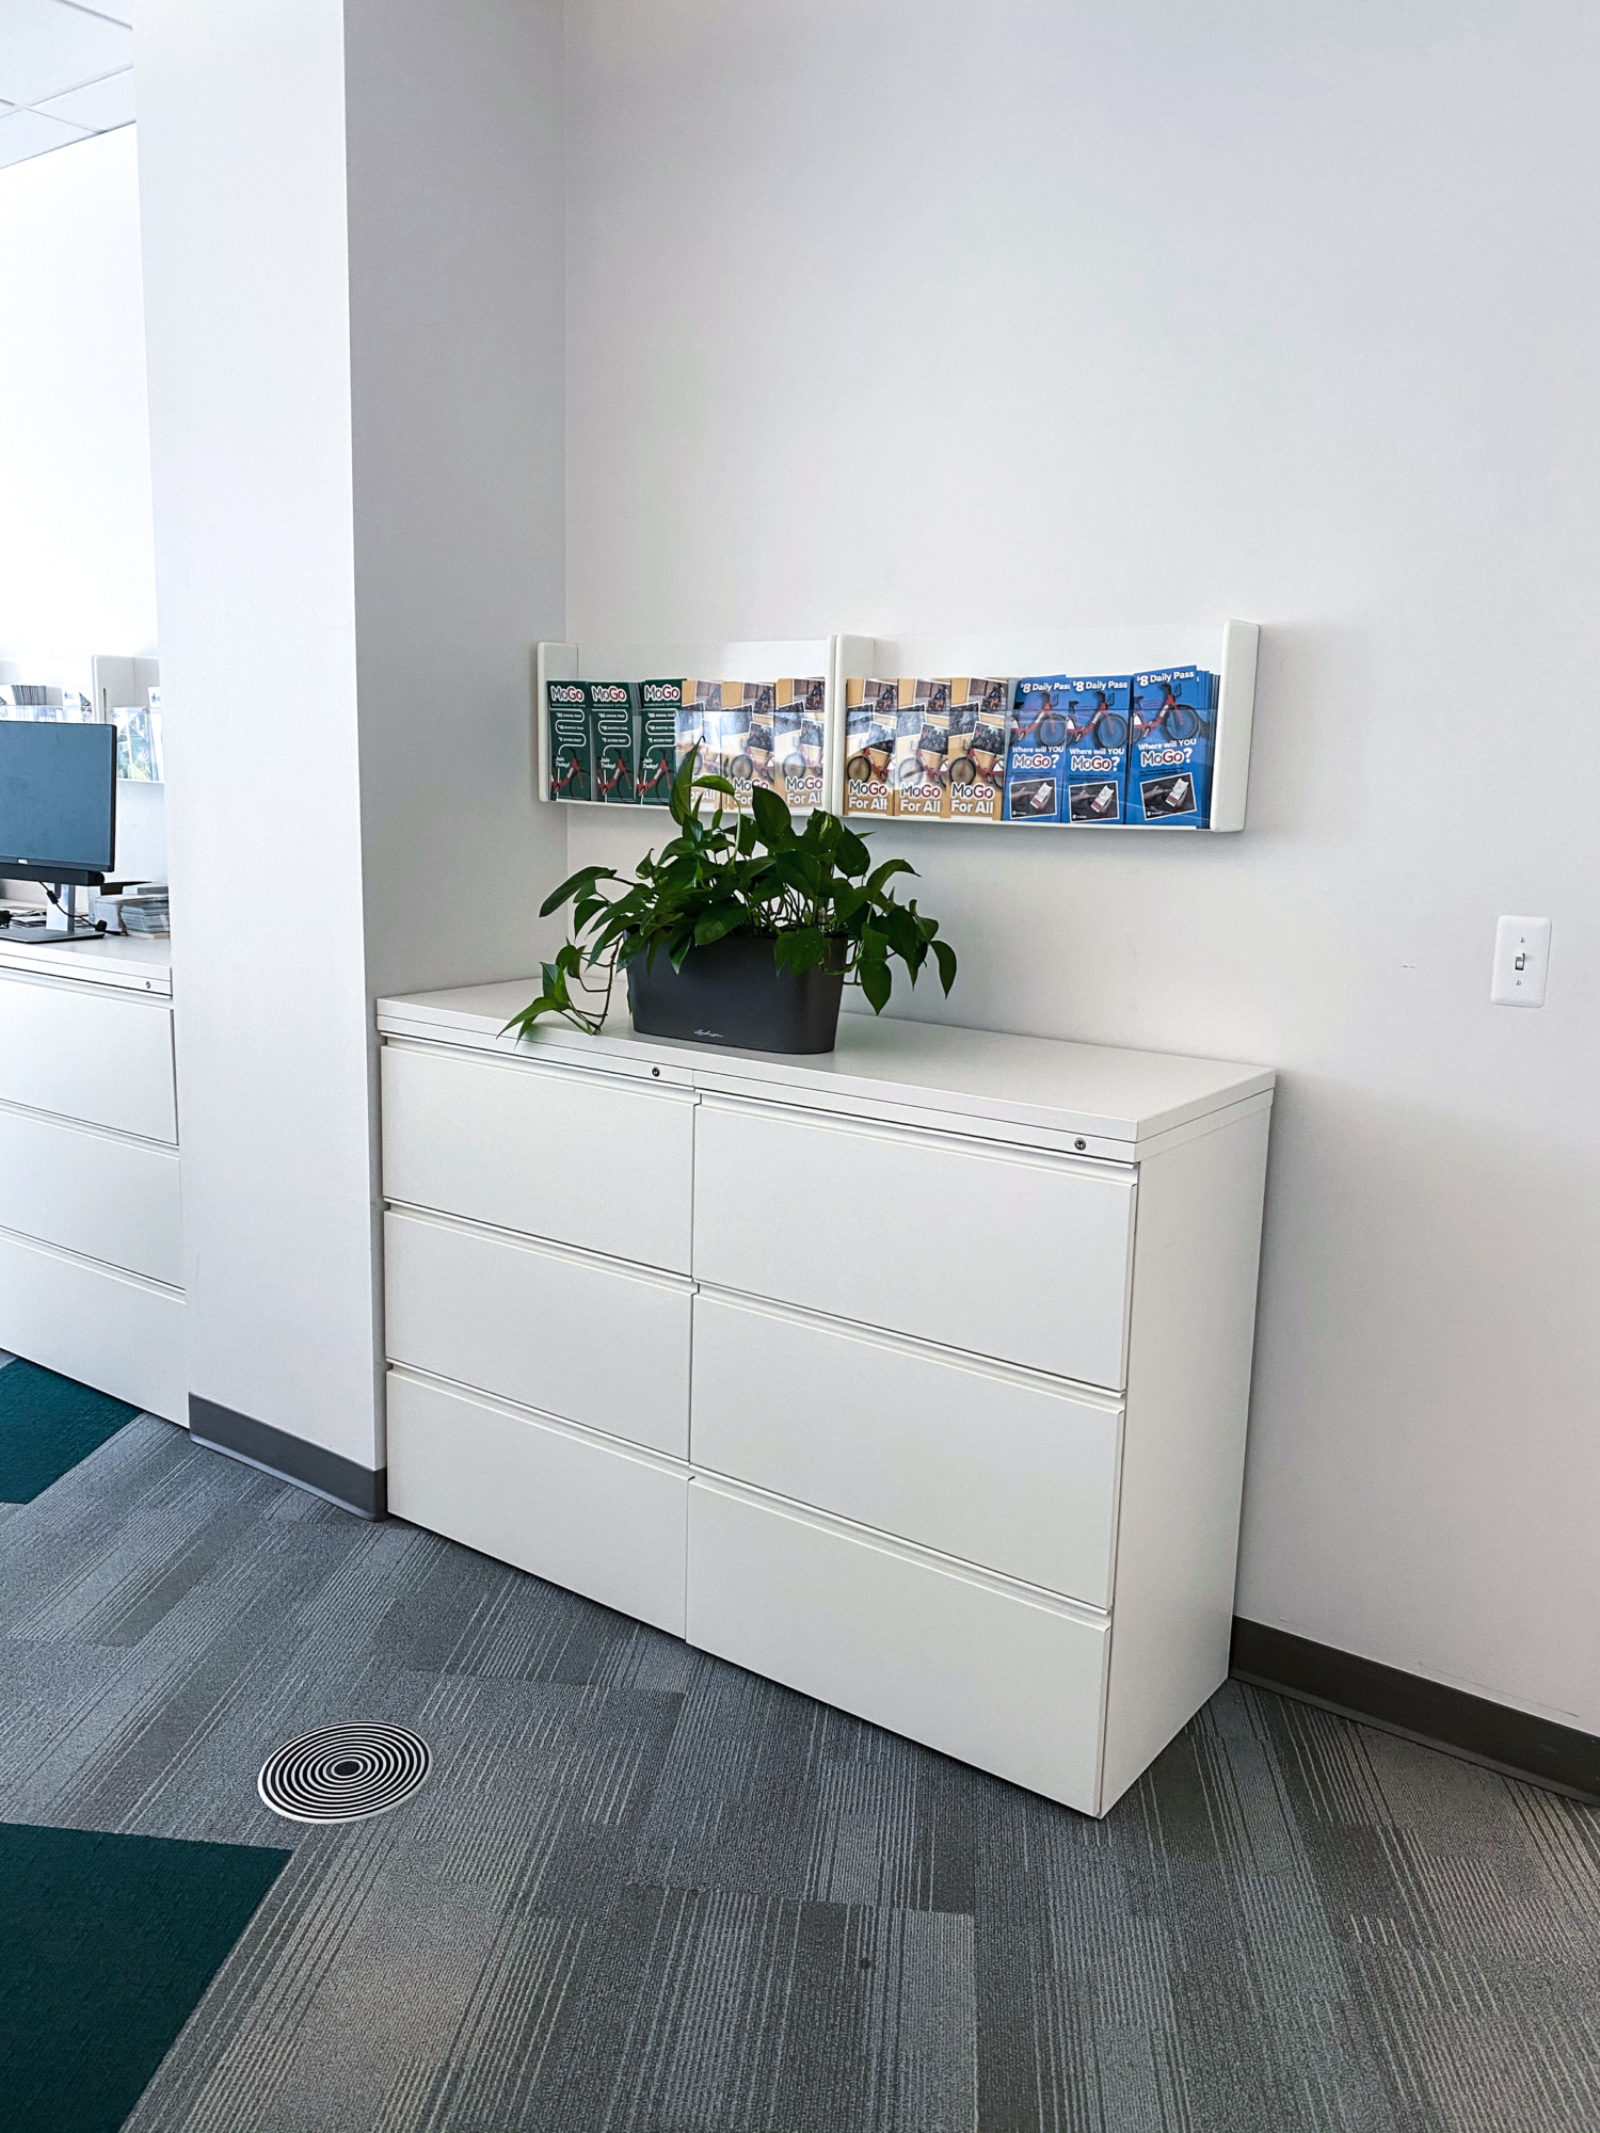 An image of a white file cabinet with a plant on top of it.